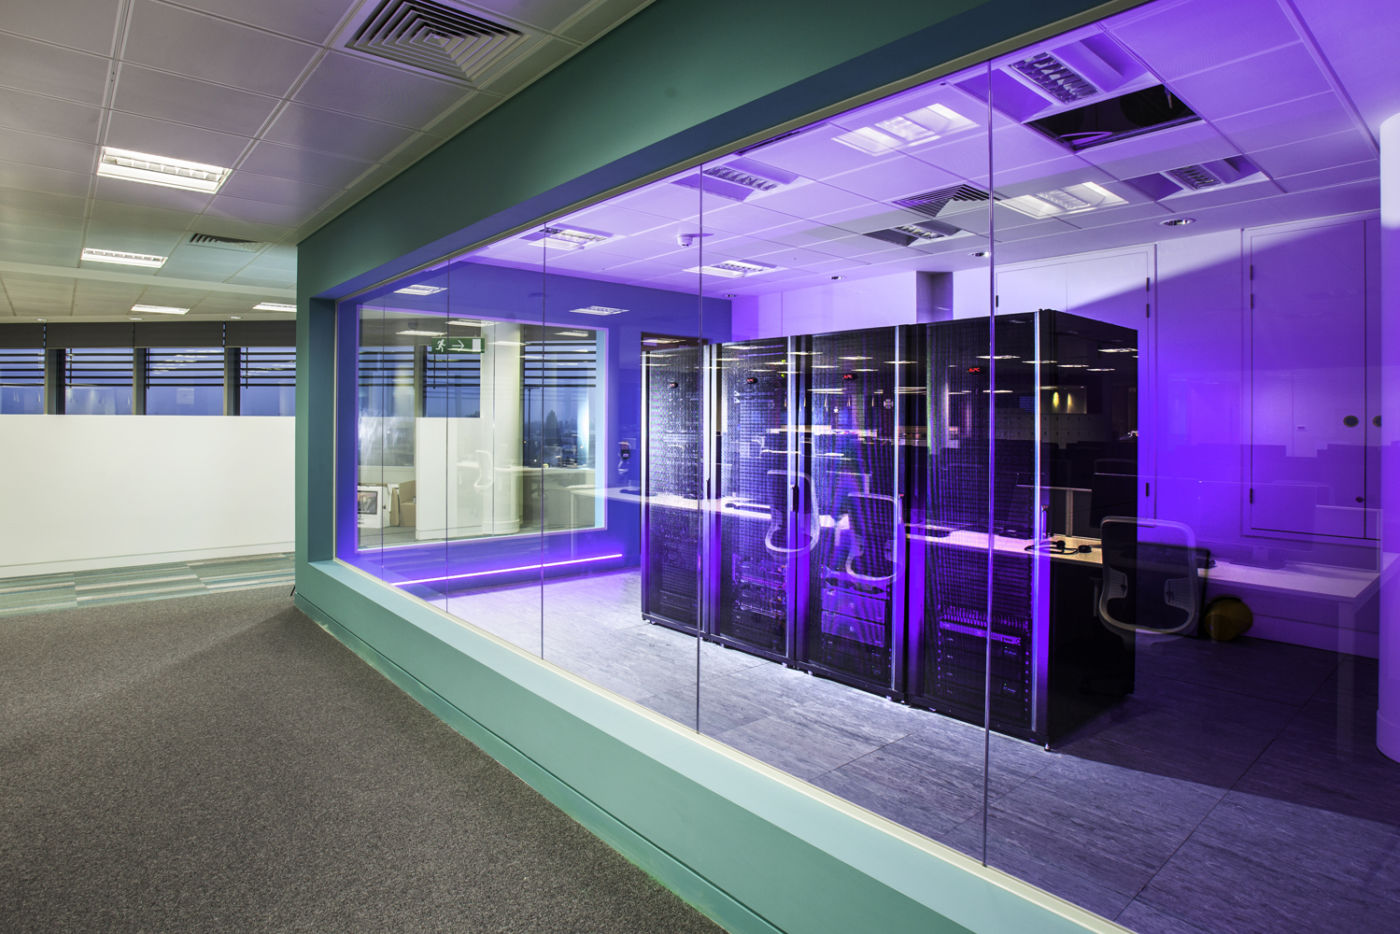 IT mainframe and server in an open plan office fit out with purple lighting